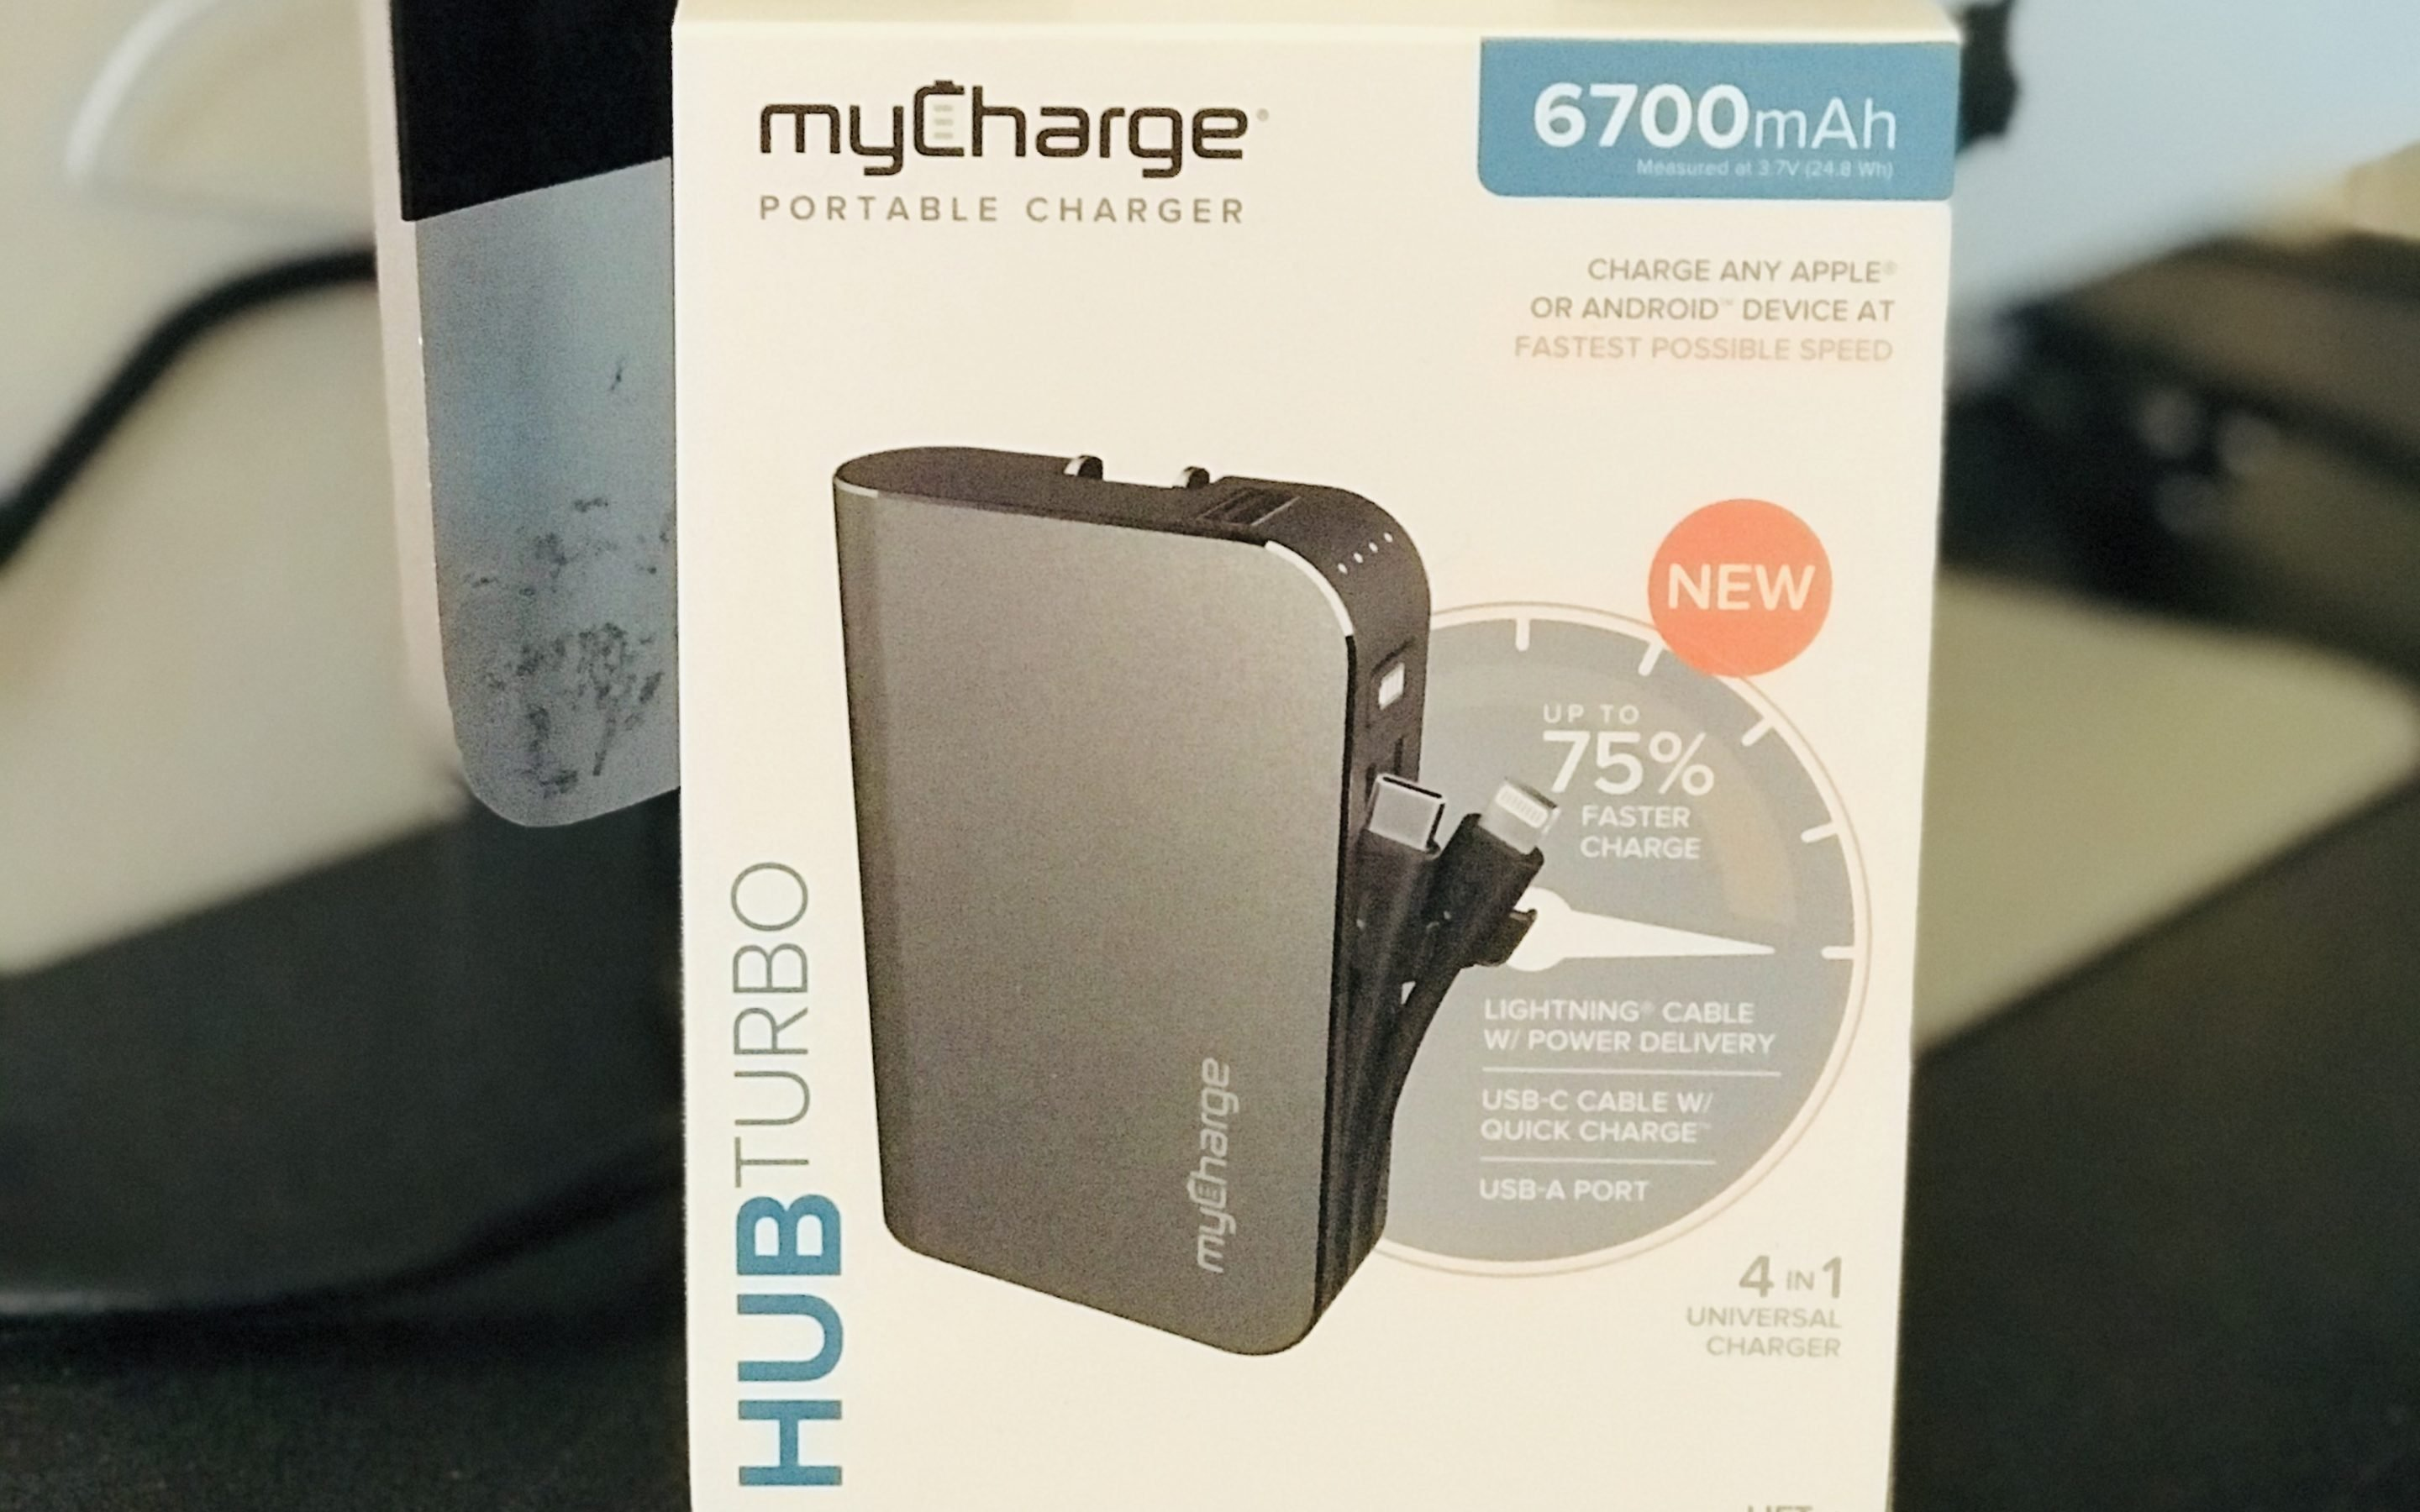 Top Reasons Why You Need a Portable Charger